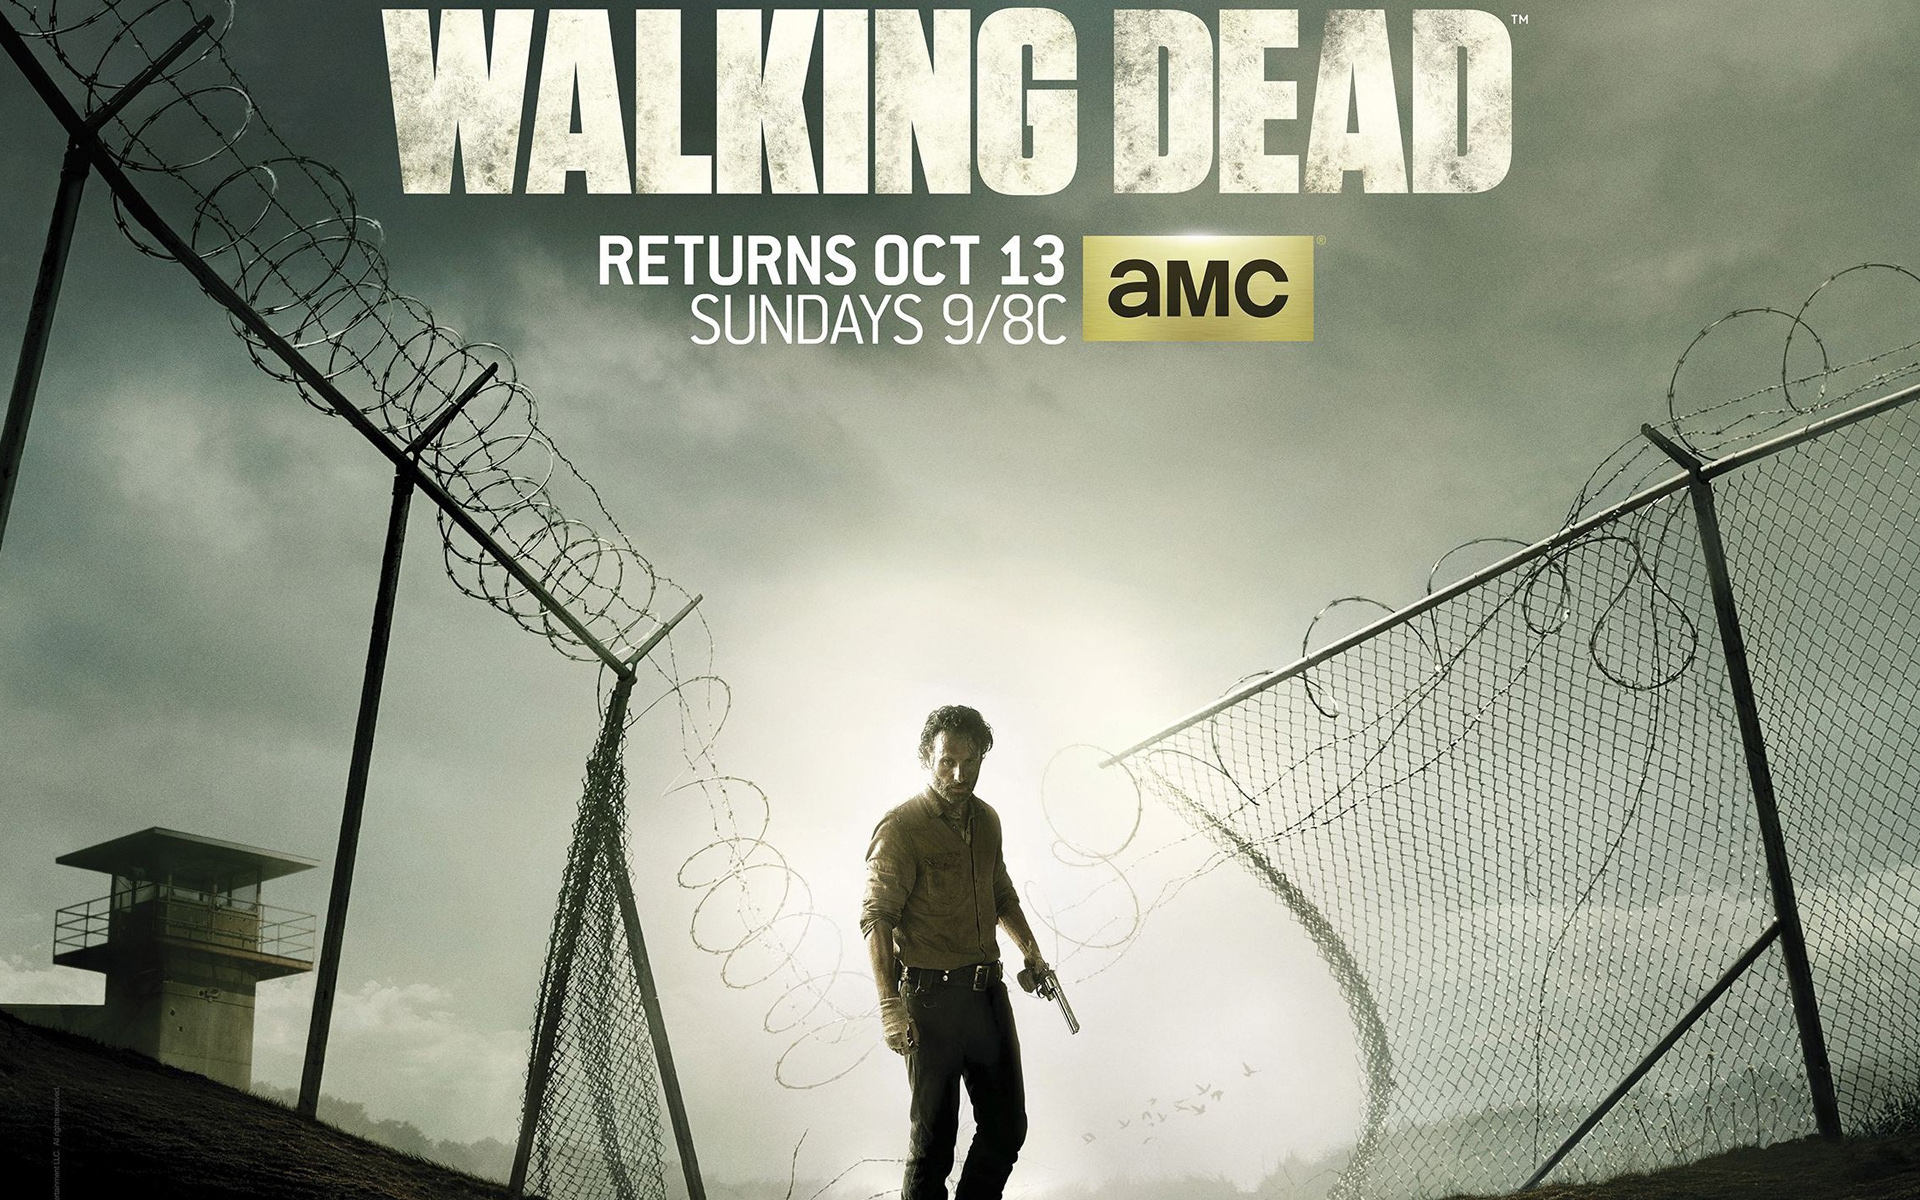 the walking dead 2013, zombie, amc, movie, Shane Walsh, poster film ...